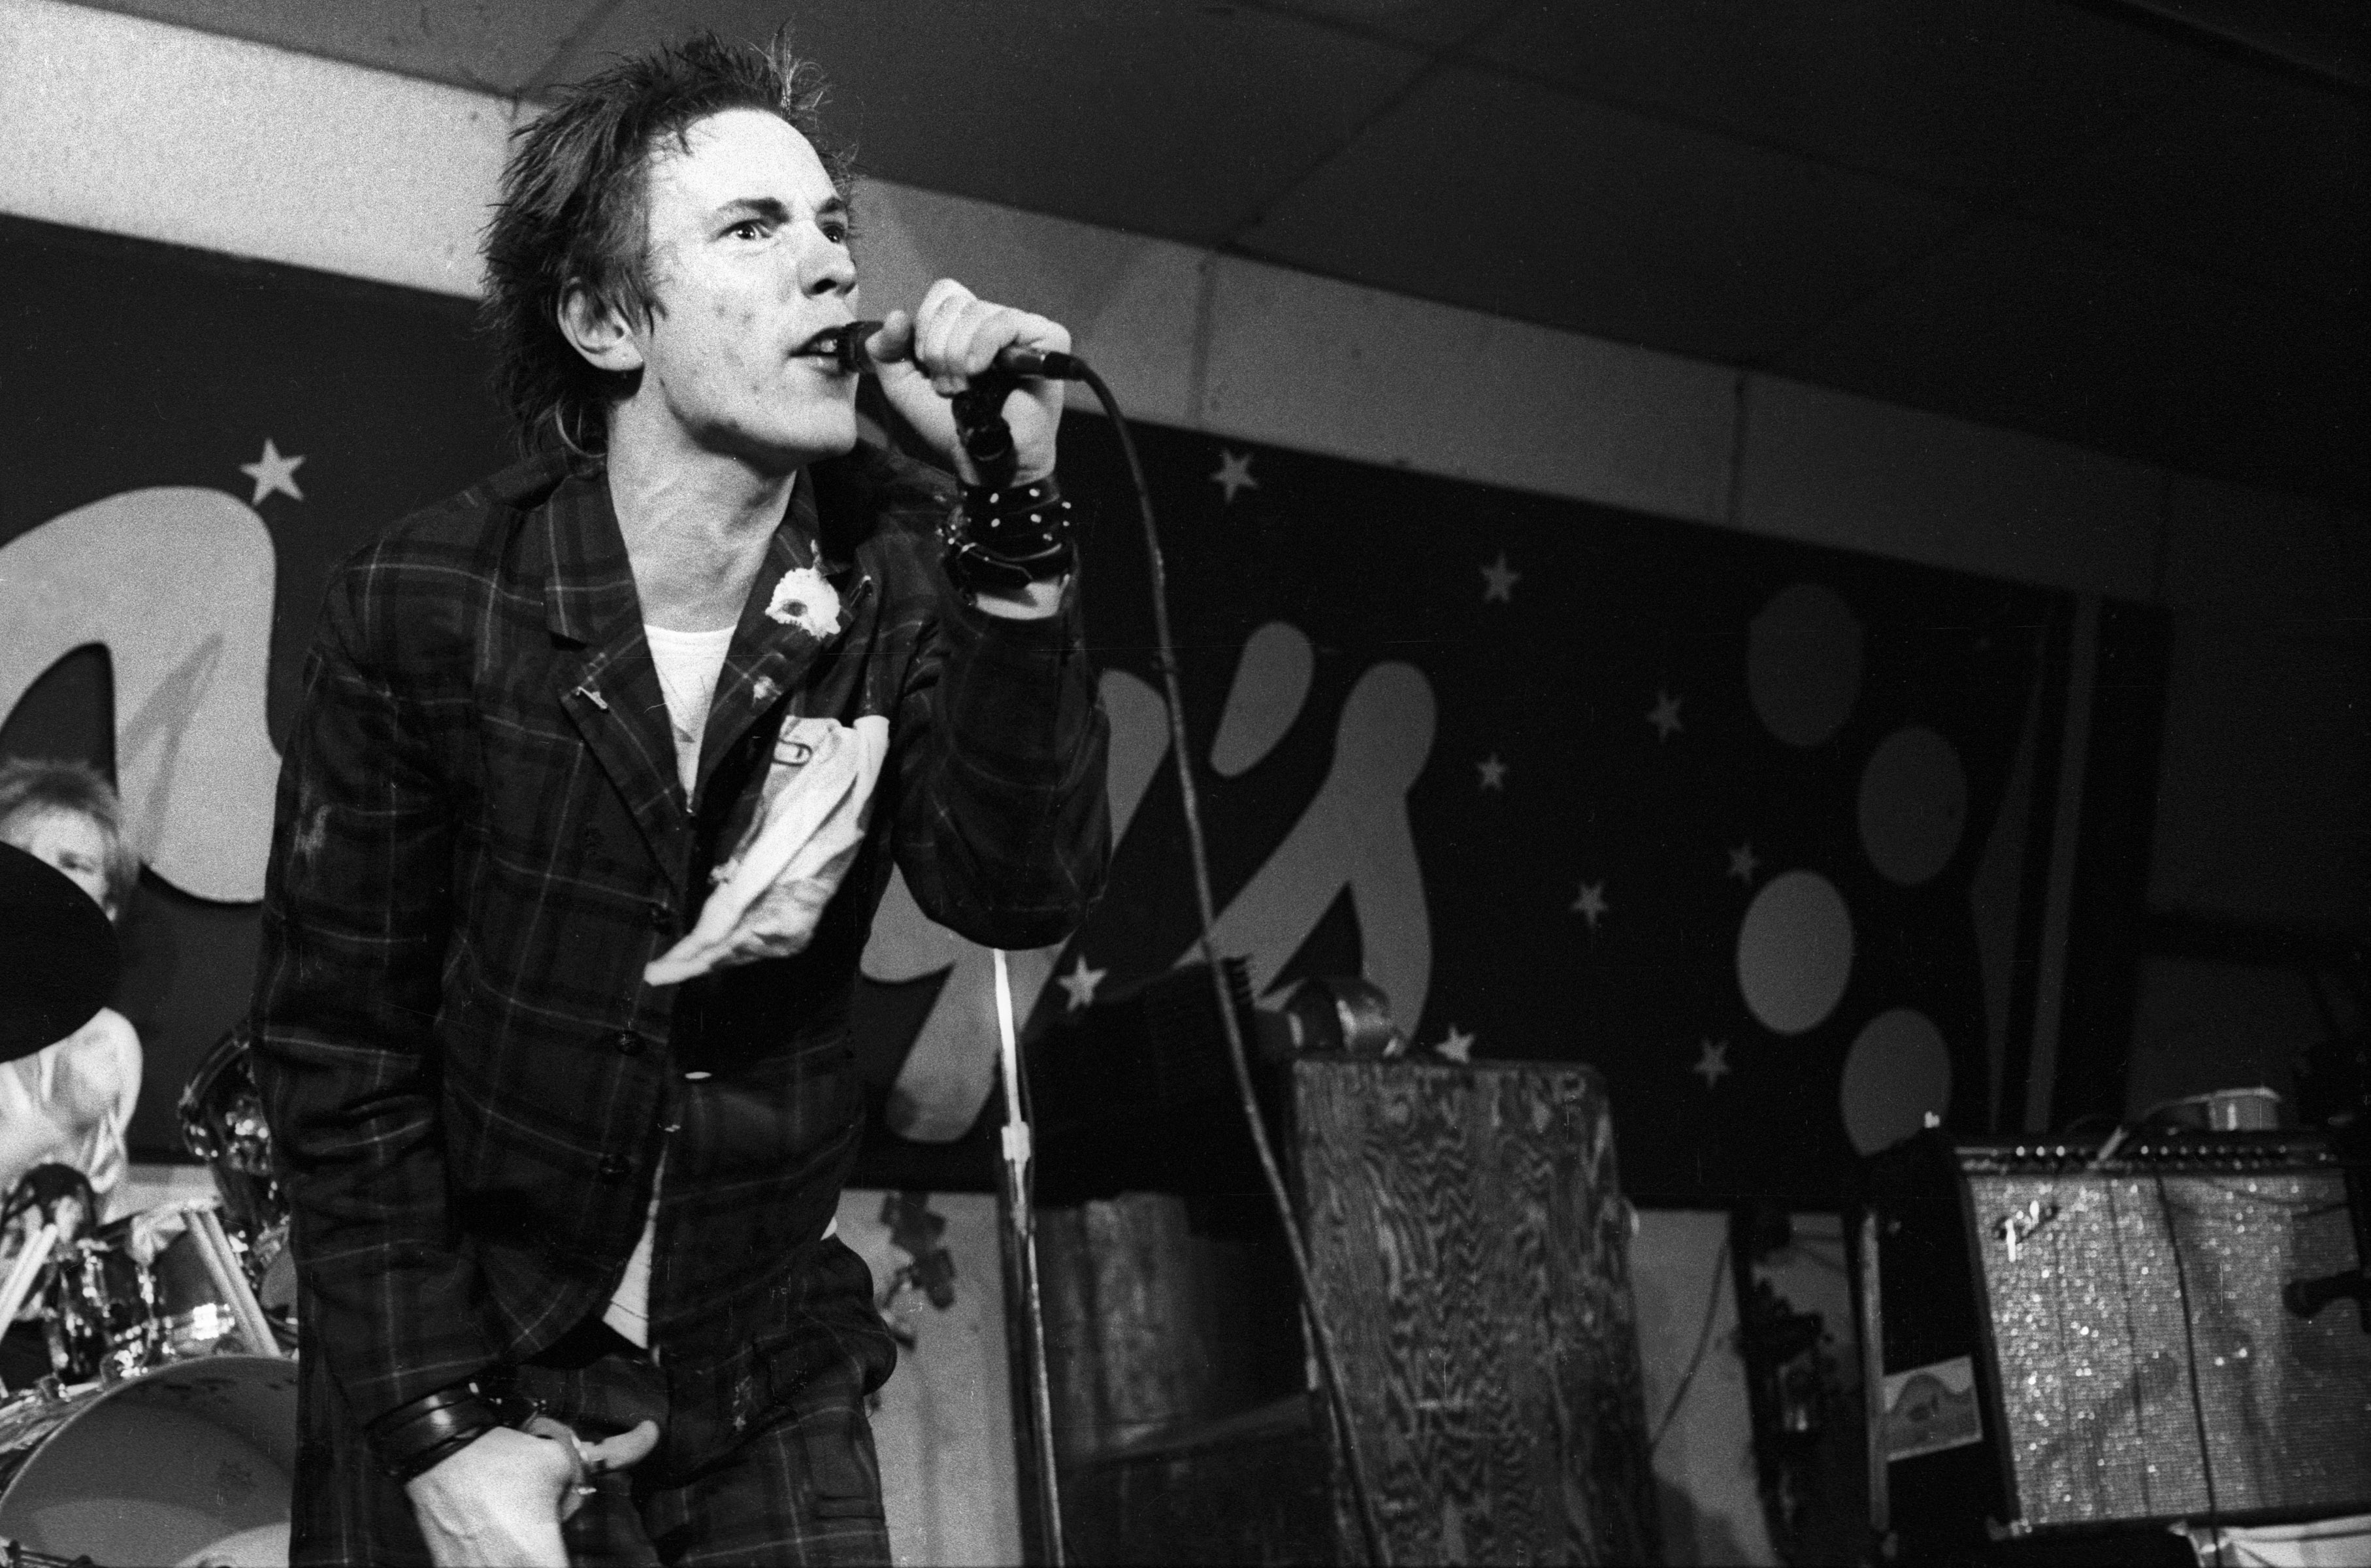 John Lydon and His Rotten Past